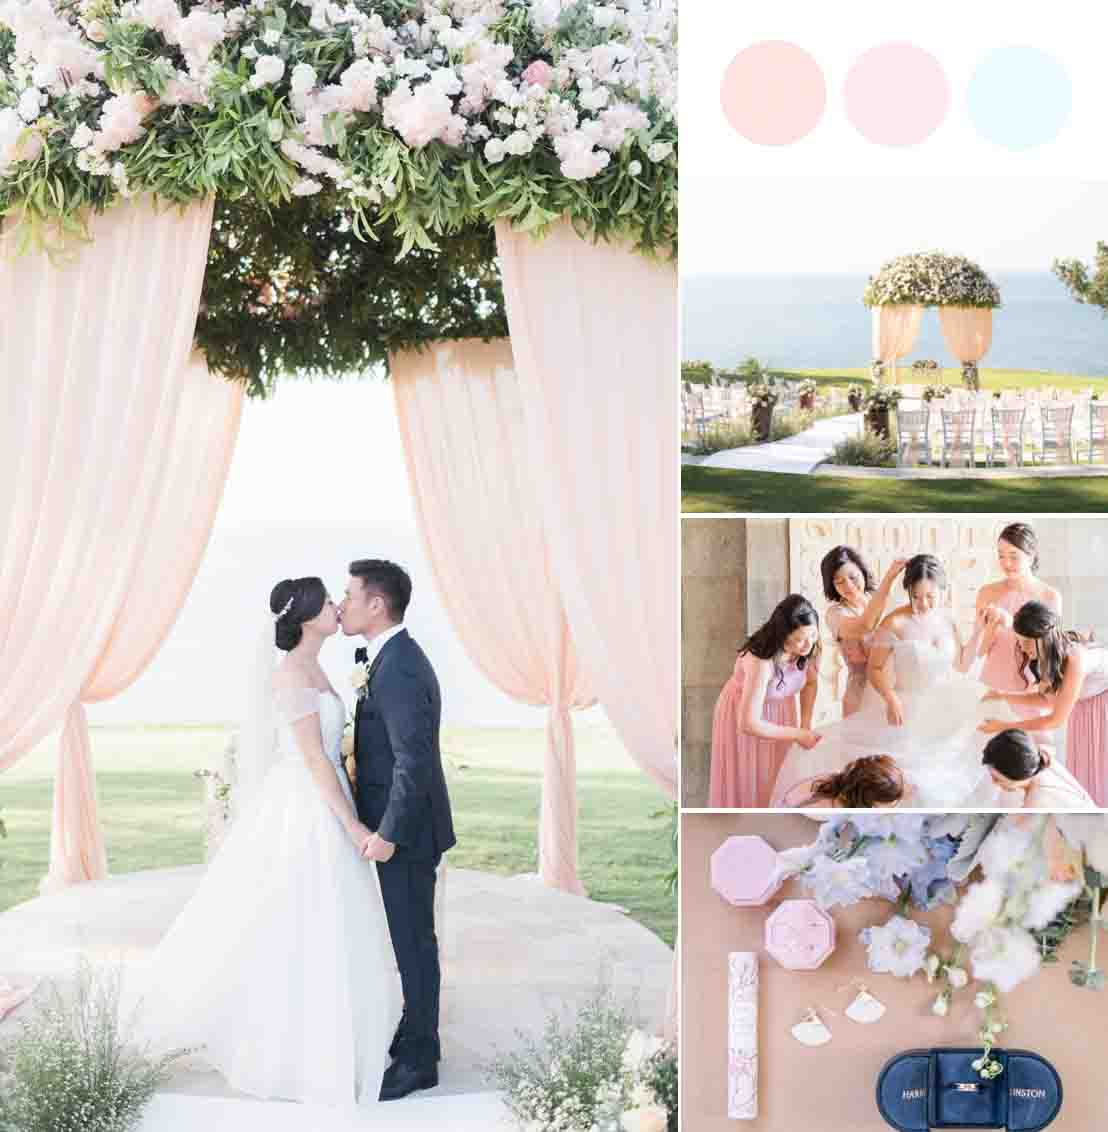 The Dreamiest Magical Bali Wedding Ever! [AYANA Resort & Spa]